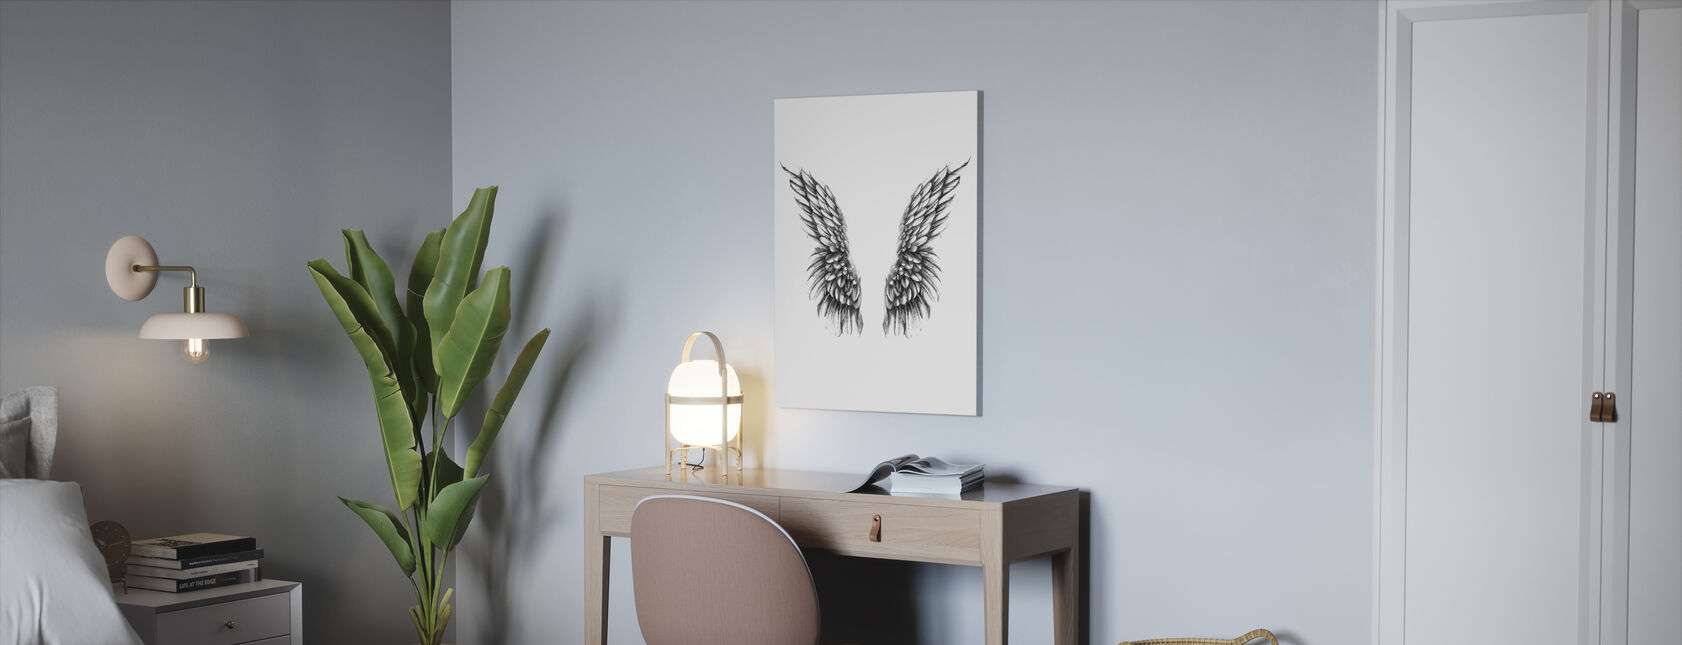 Watch over me - Canvas print - Office